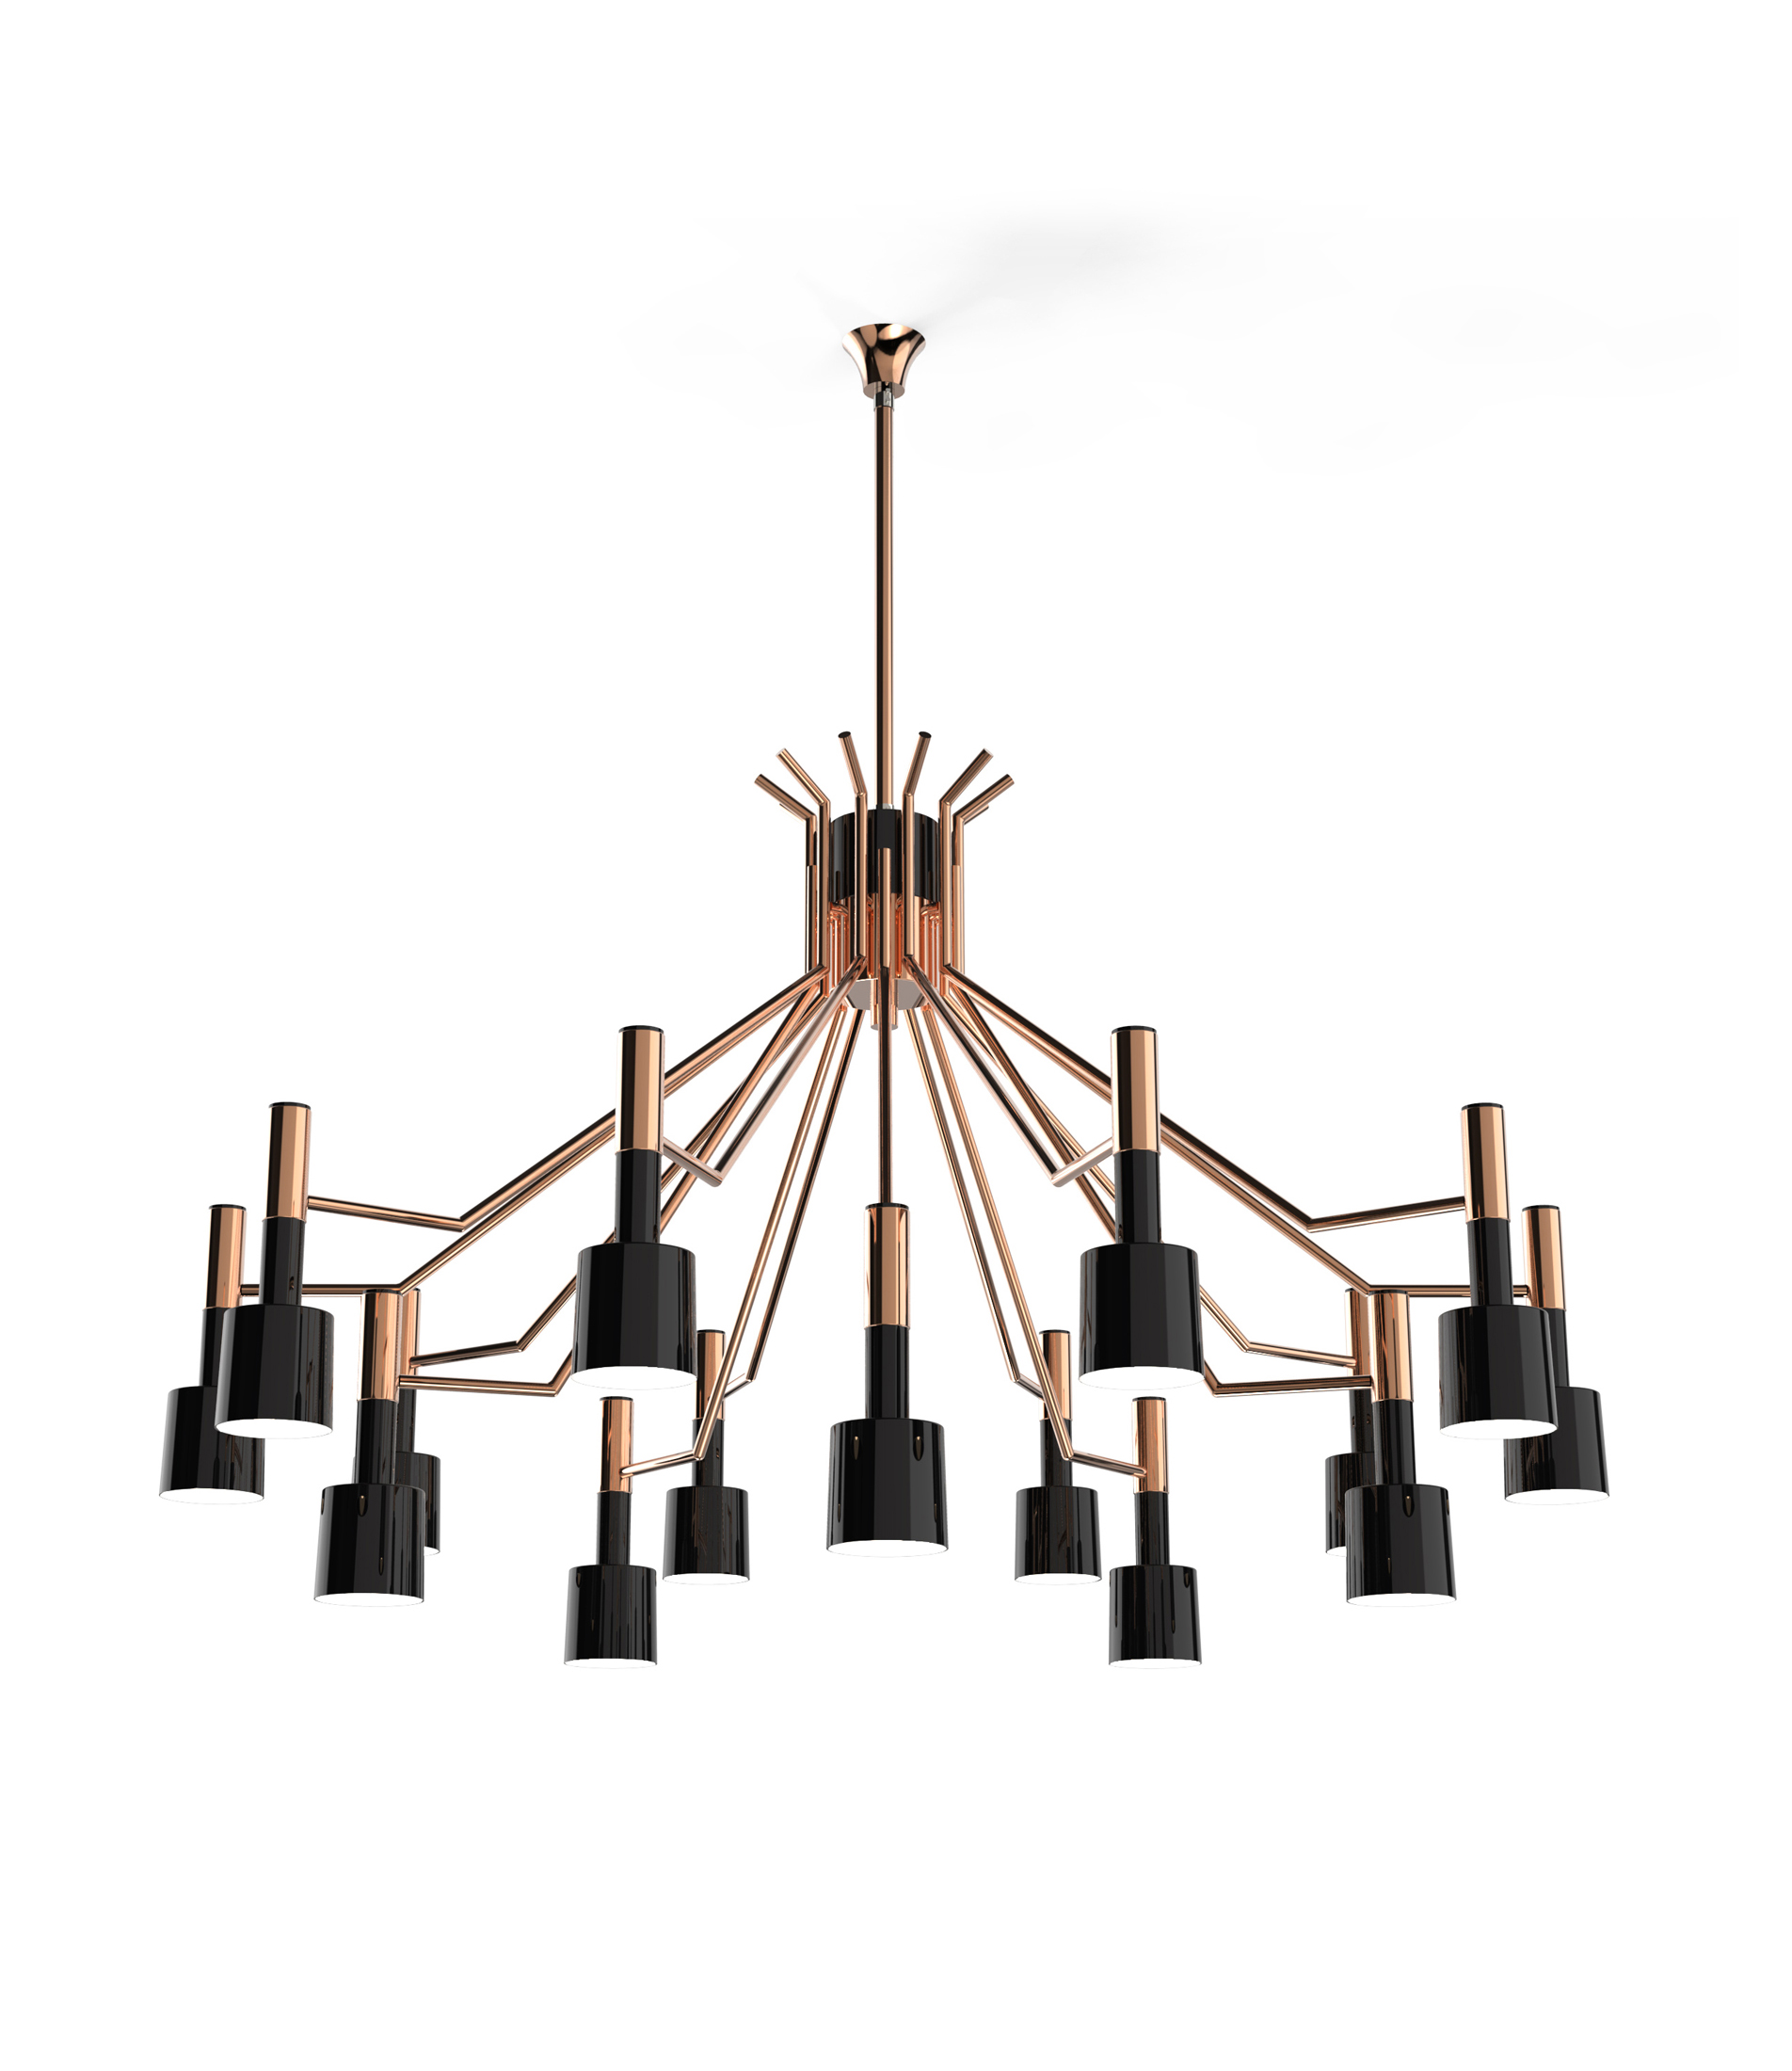 Trending Product An Iconic Round Chandelier with a Mid-Century Design 2 round chandelier Trending Product: An Iconic Round Chandelier with a Mid-Century Design Trending Product An Iconic Round Chandelier with a Mid Century Design 4